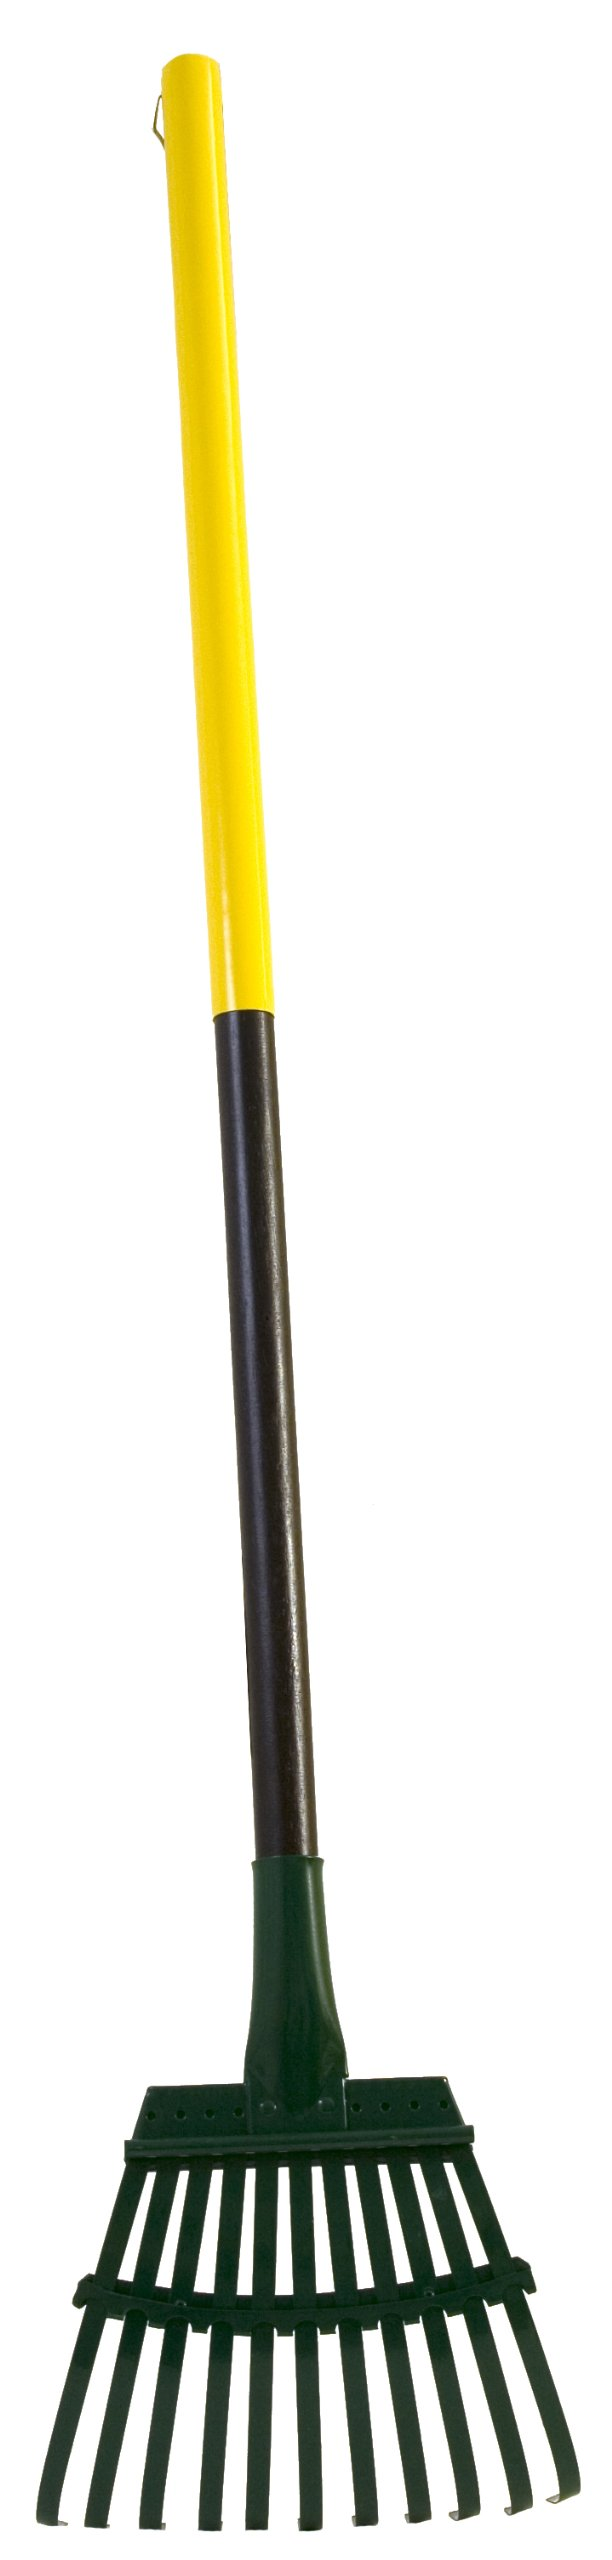 Flexrake 8W Steel Rake with 36-Inch Cherry Stained Wood Handle